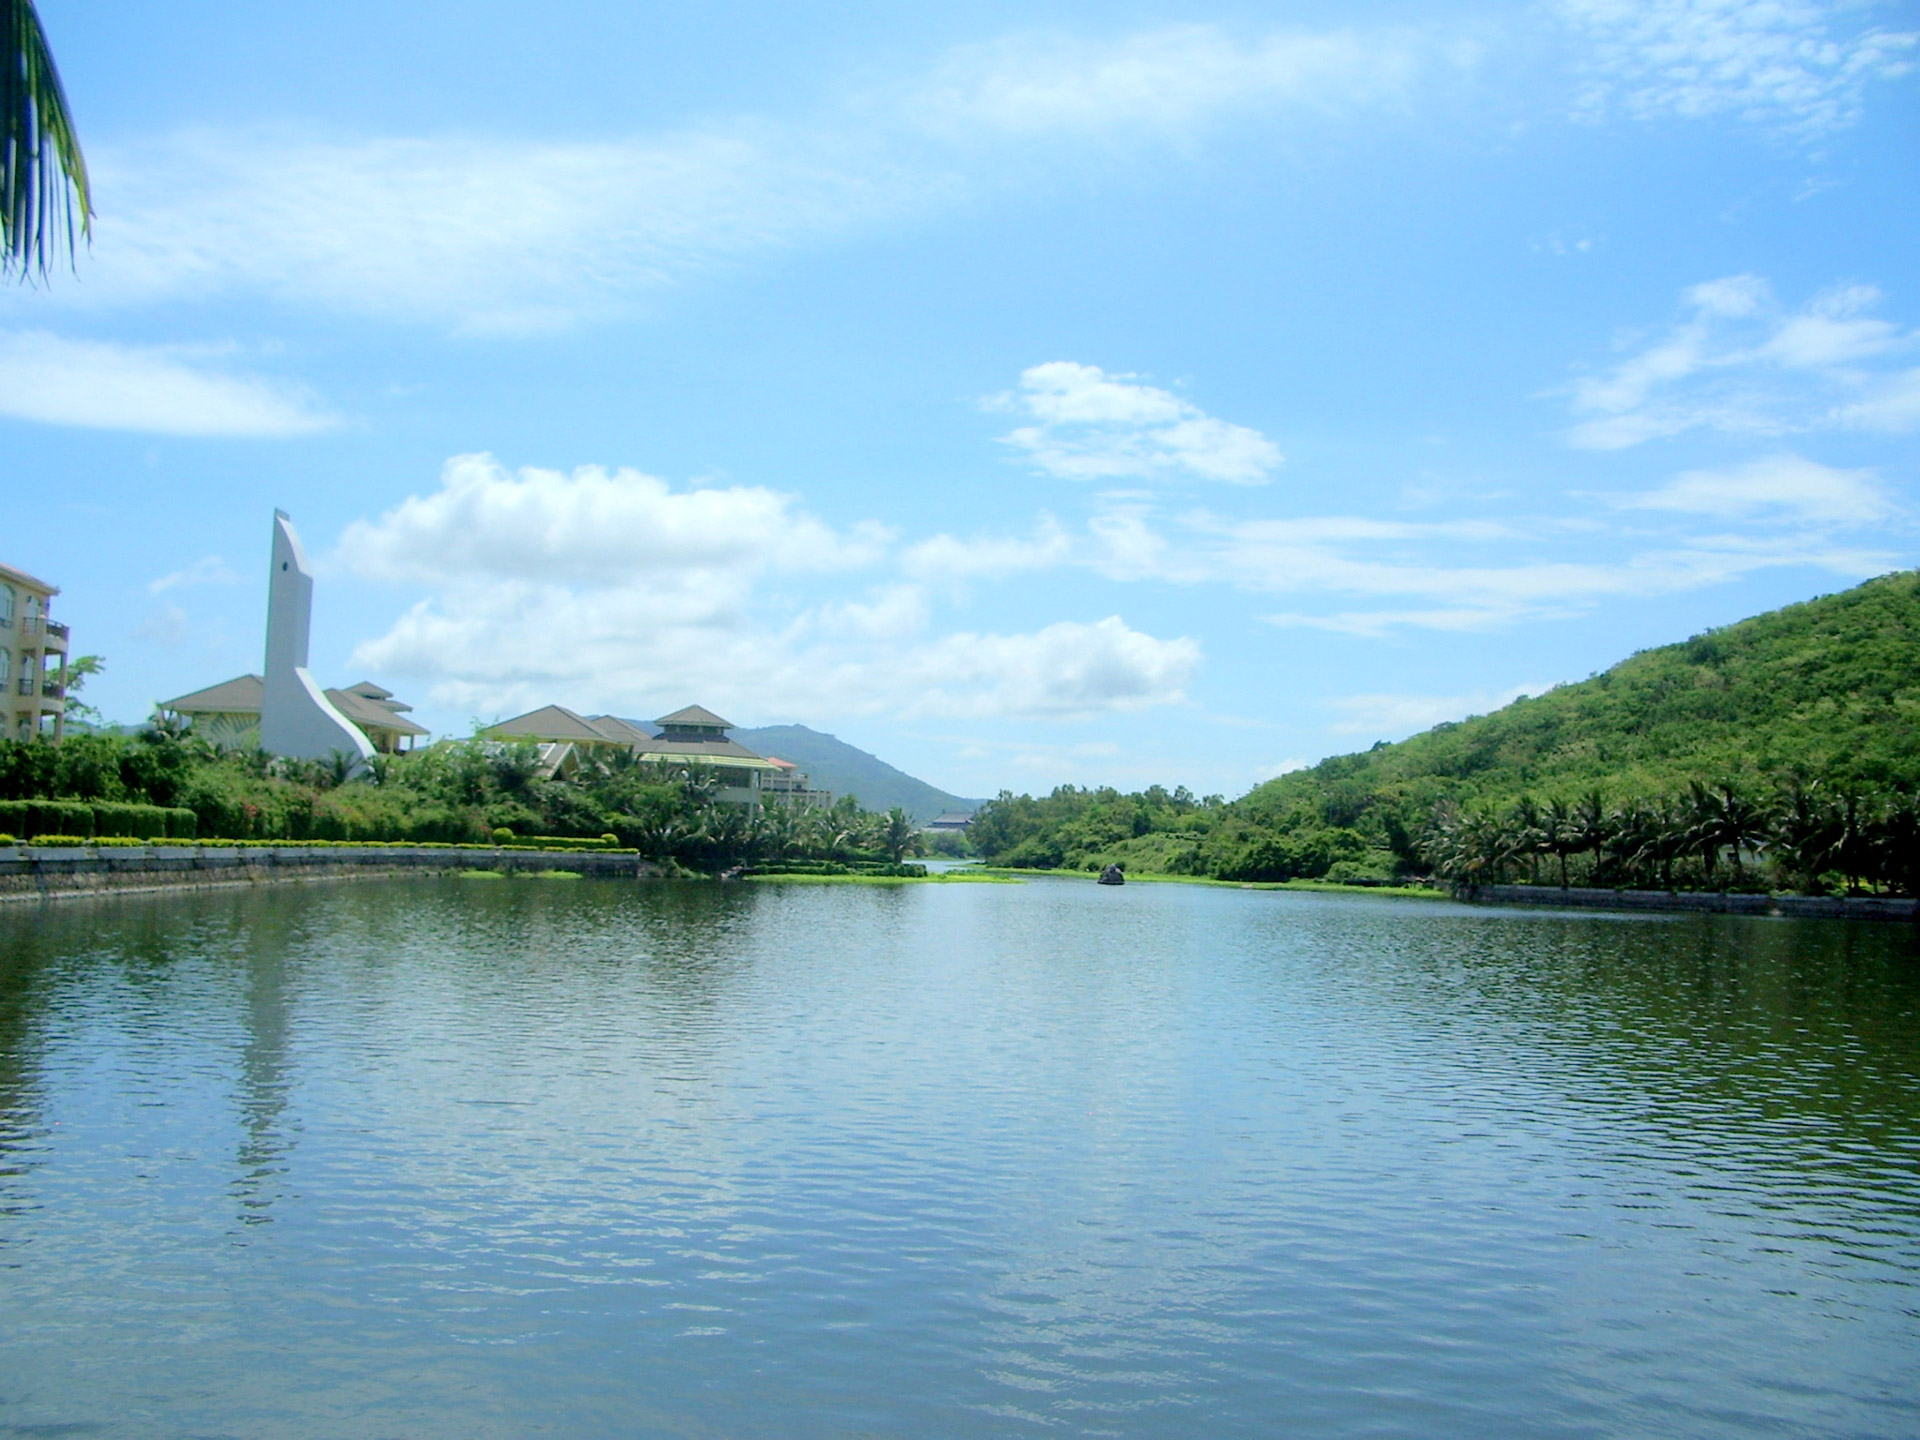 Hainan Island is blessed with hills and tablelands that end in narrow coastlines filled with harbors and bays. (Image: publicdomainpicturers.net / CC0 1.0)